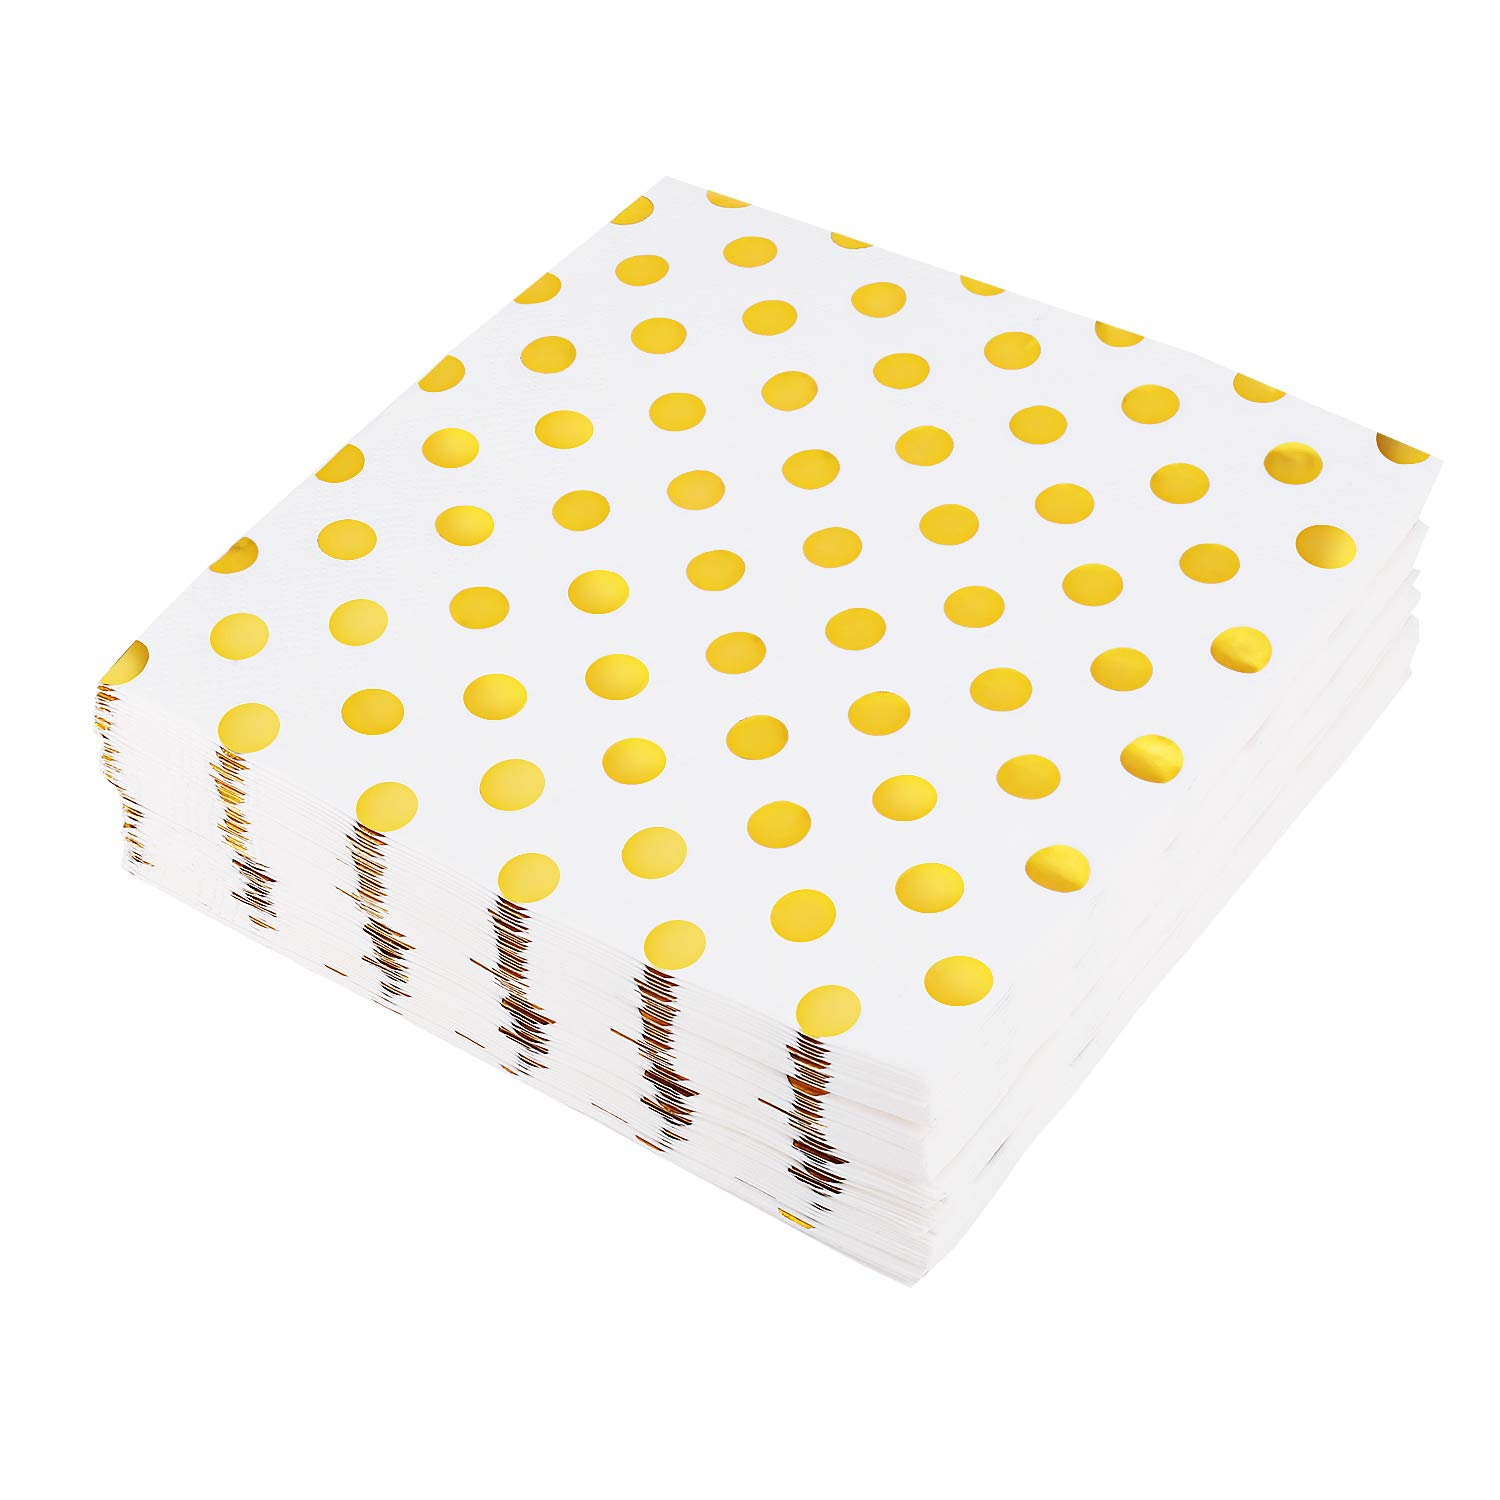 200 Gold Polka Dot Cocktail Napkins, Disposable Paper Party Napkins, Folded 6.5x6.5inch, Wedding Birthday Anniversary Engagement Holiday Supplies